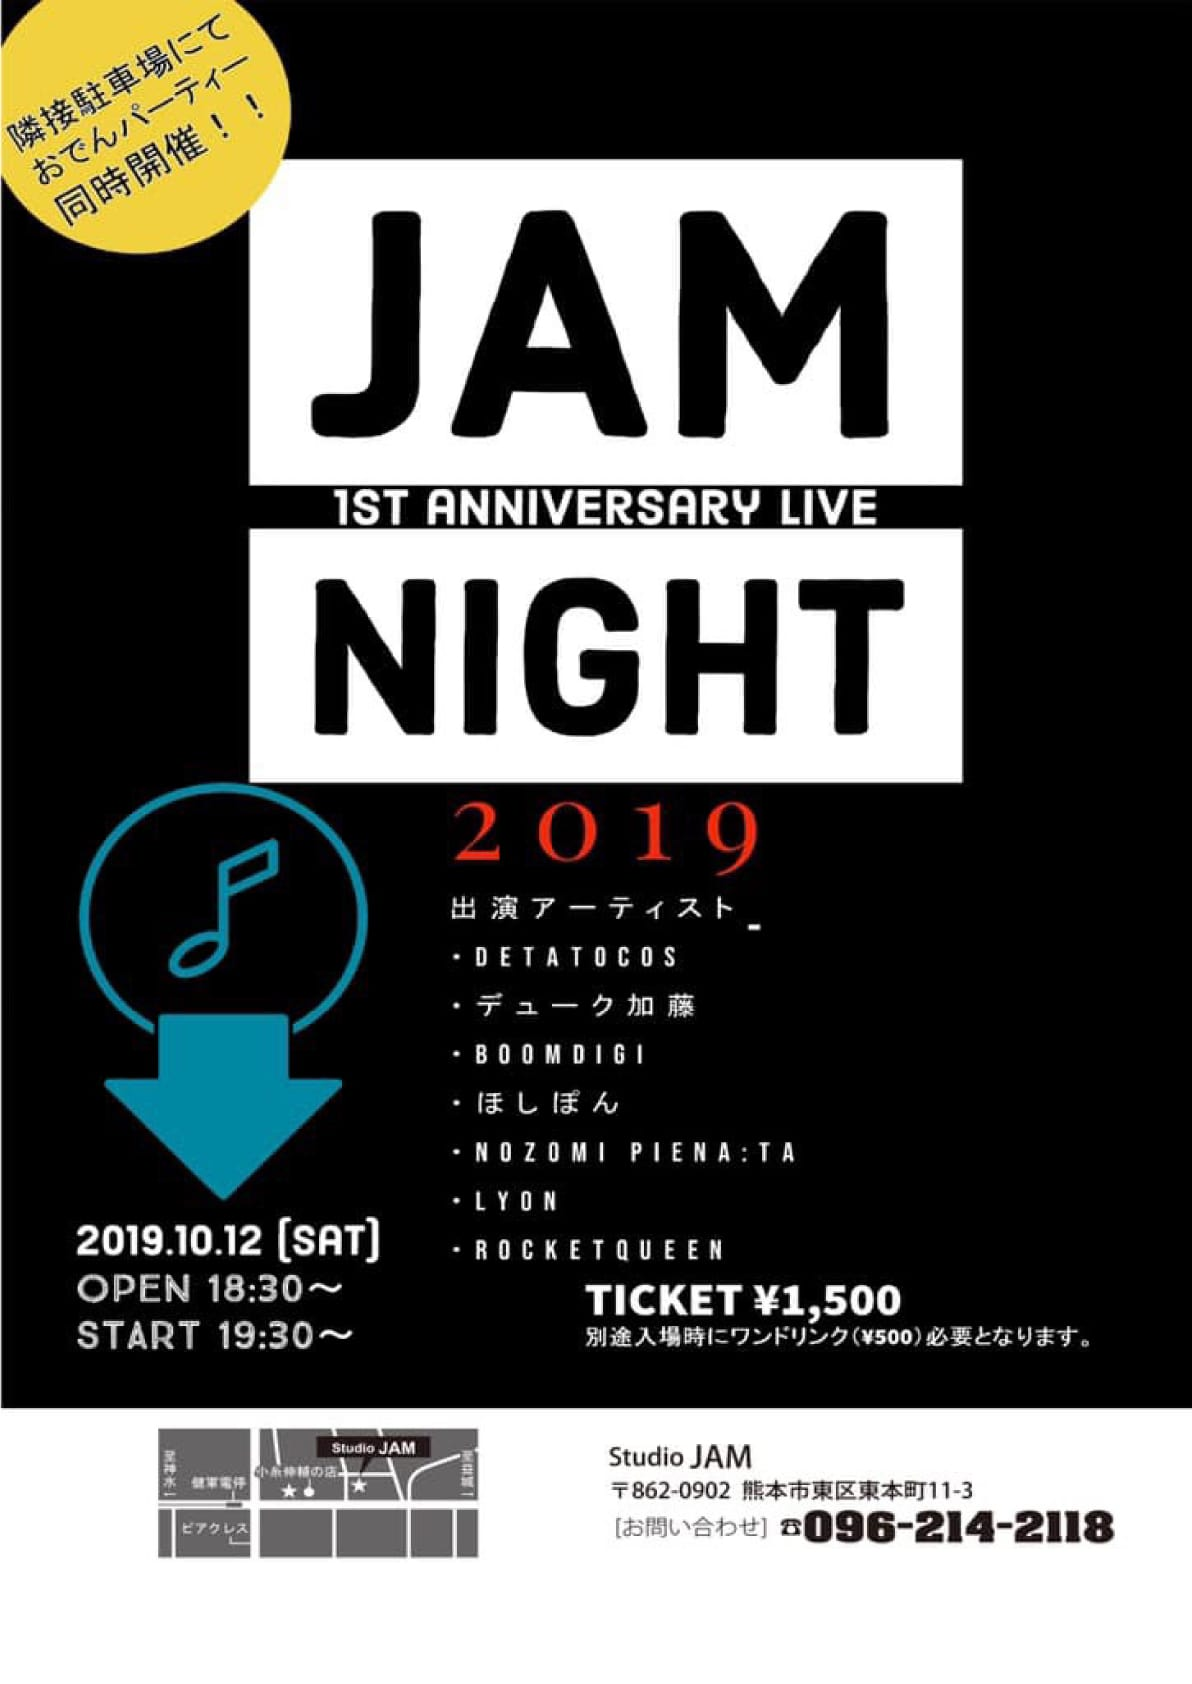 JAM NIGHT 1ST ANNIVERASARY LIVEチラシ1